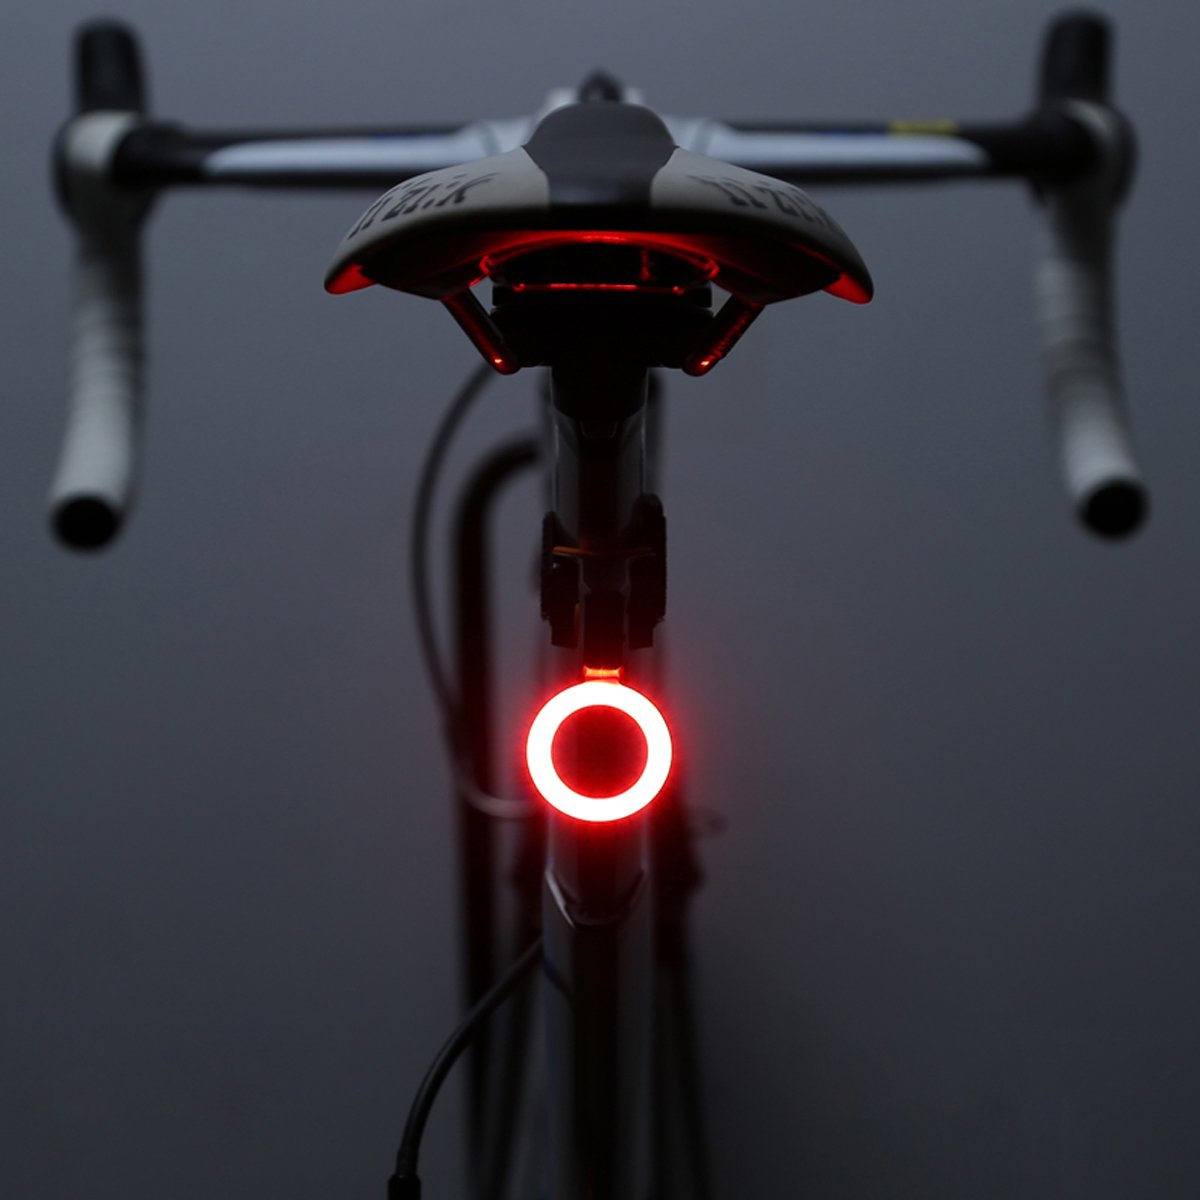 OUTERDO Bike Taillight, Rear Light USB Rechargeable 70 Lumens LED Bicycle Red Taillight with Different Shapes 5 Modes Super Bright 300mAh Fits on Road Bikes, Helmets, Cycling Safety Flashlight Circle